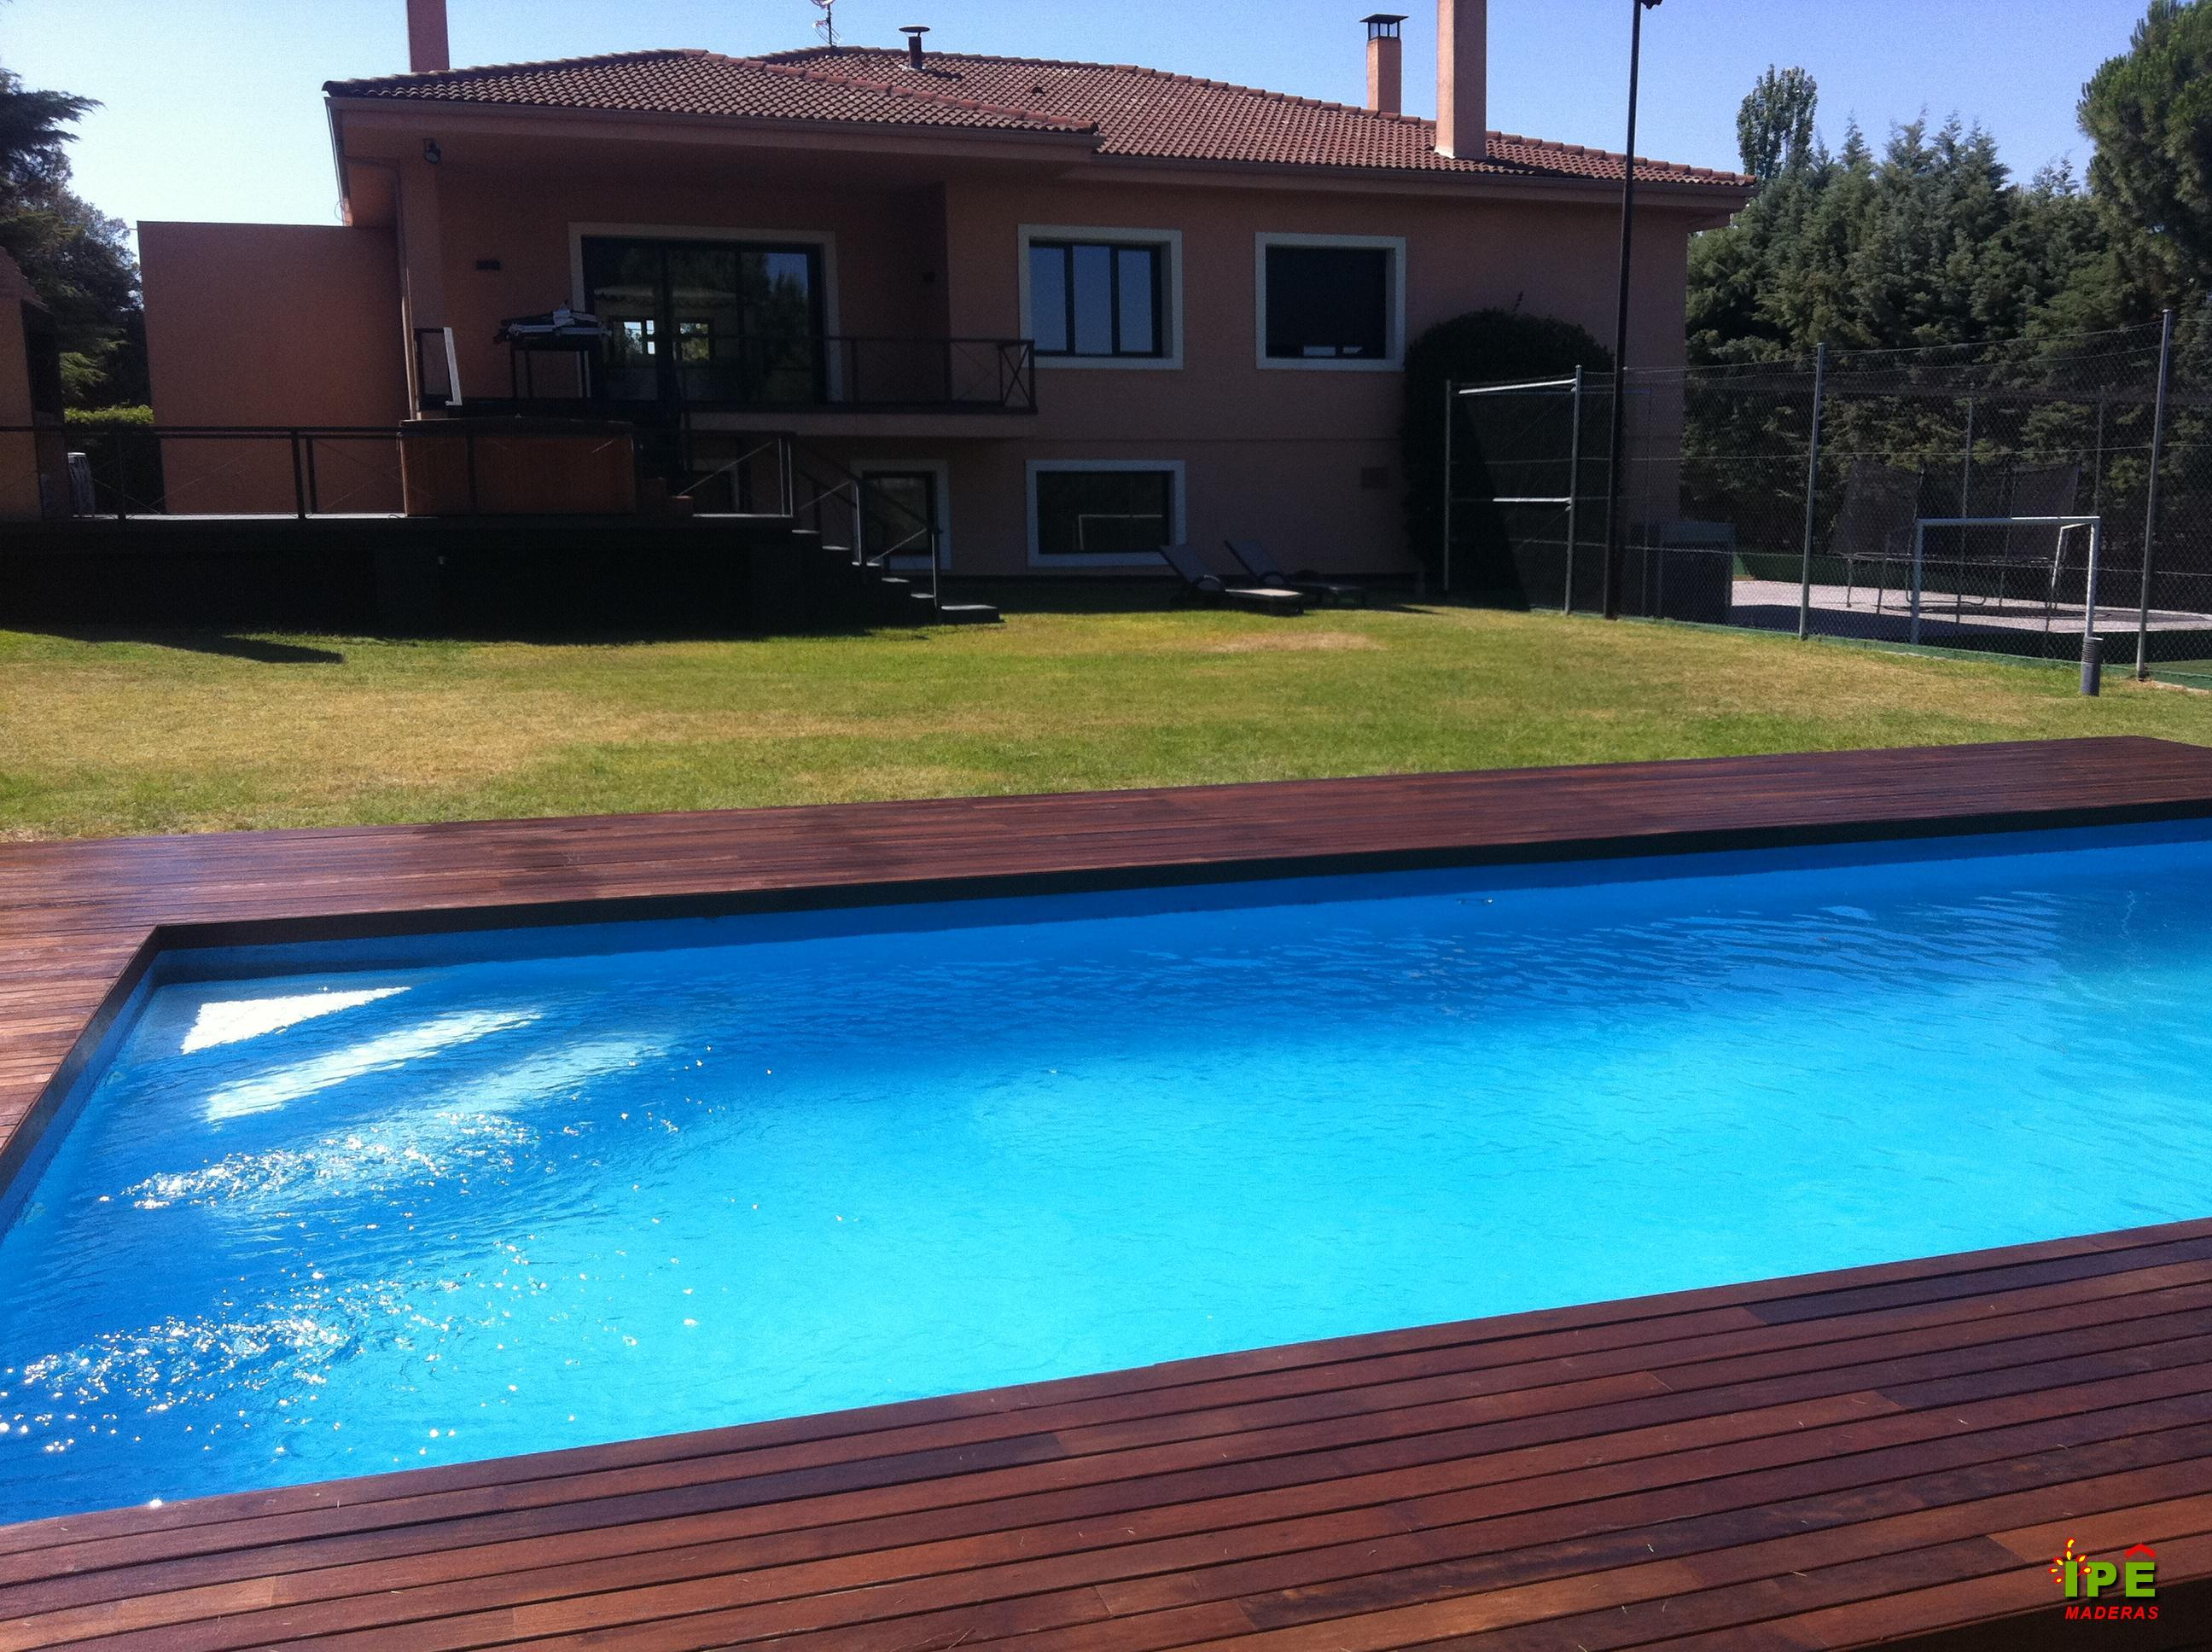 Precios Tarima para Piscinas - Venta de Tarimas de Piscina | Ipe Maderas